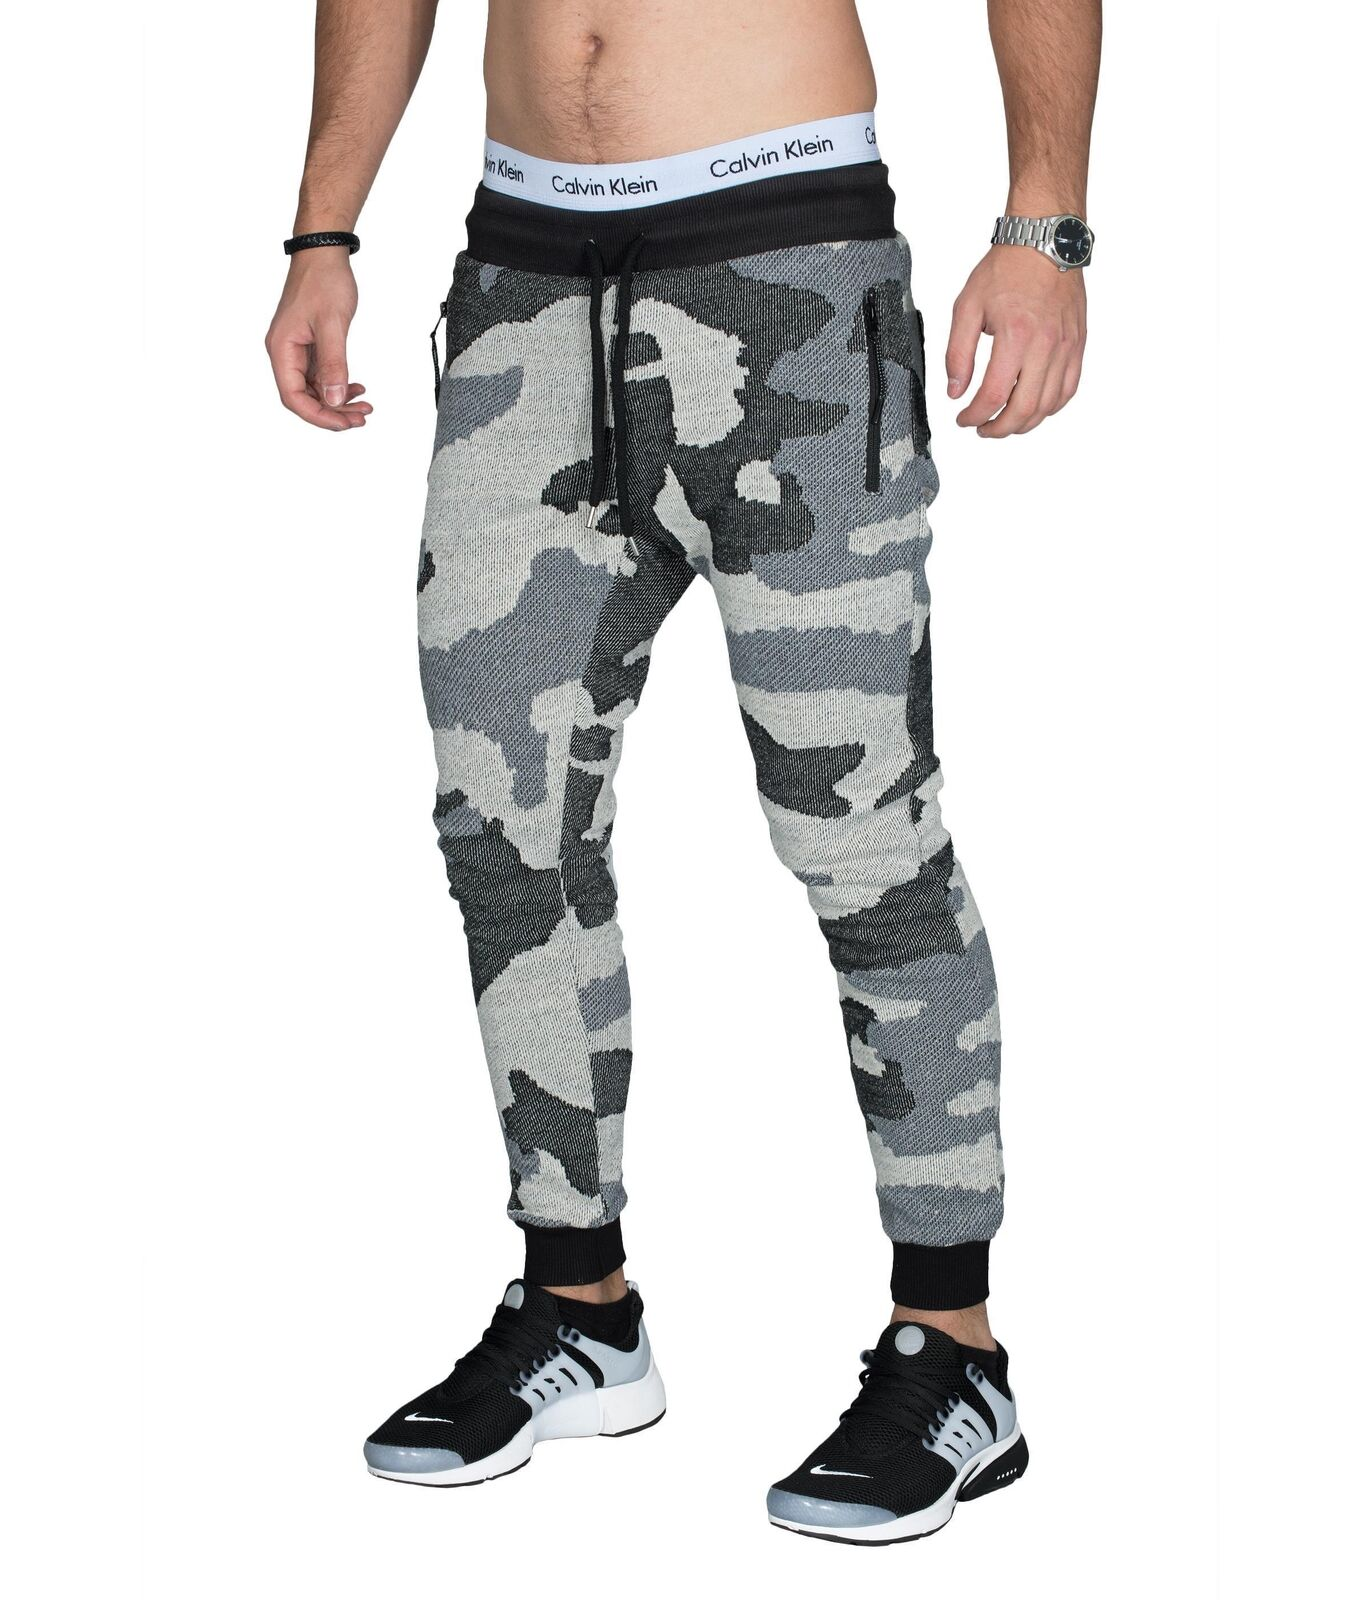 BetterStylz CARPARBZBZ Jogginghose Slim Fit Sporthose Sweatpants Jogger Fitness